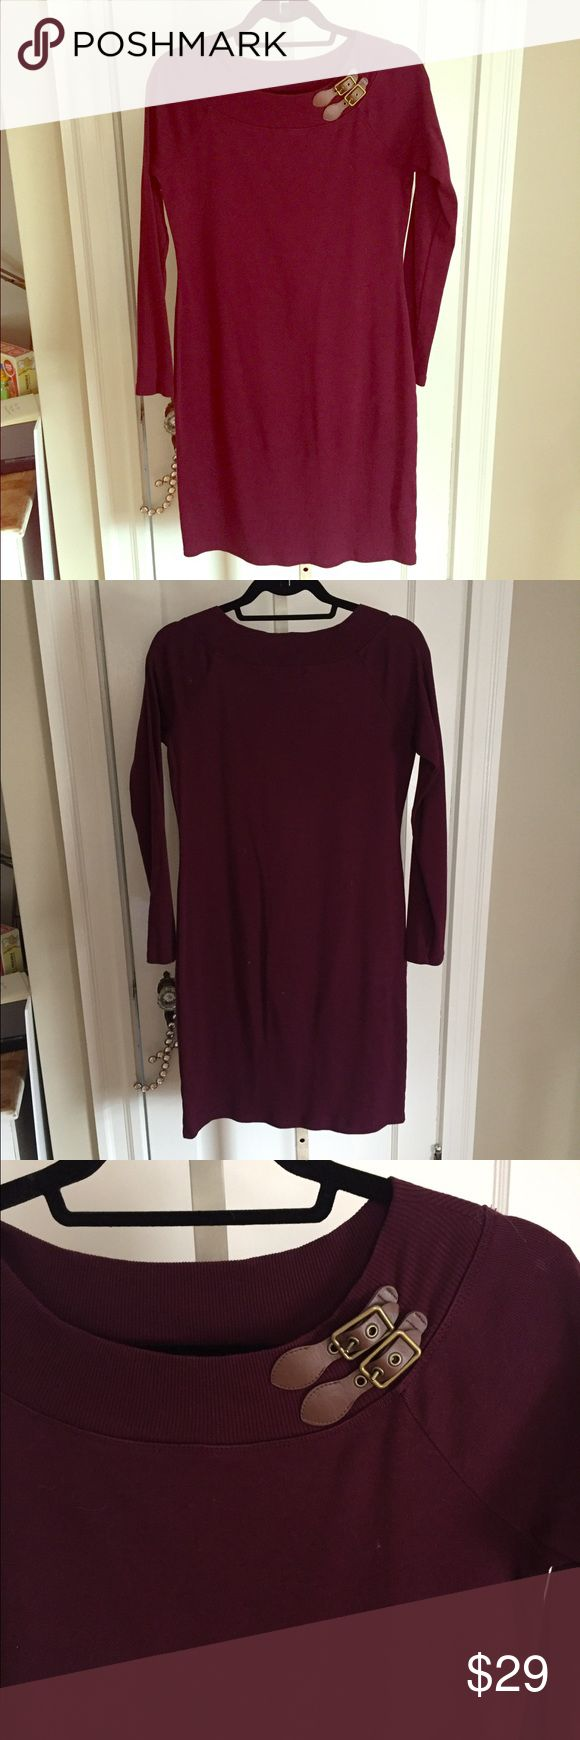 Burgundy Ralph Lauren Dress Long sleeve, hits just below the knee. Buckle detail on the collar. In very good condition. Dresses Long Sleeve